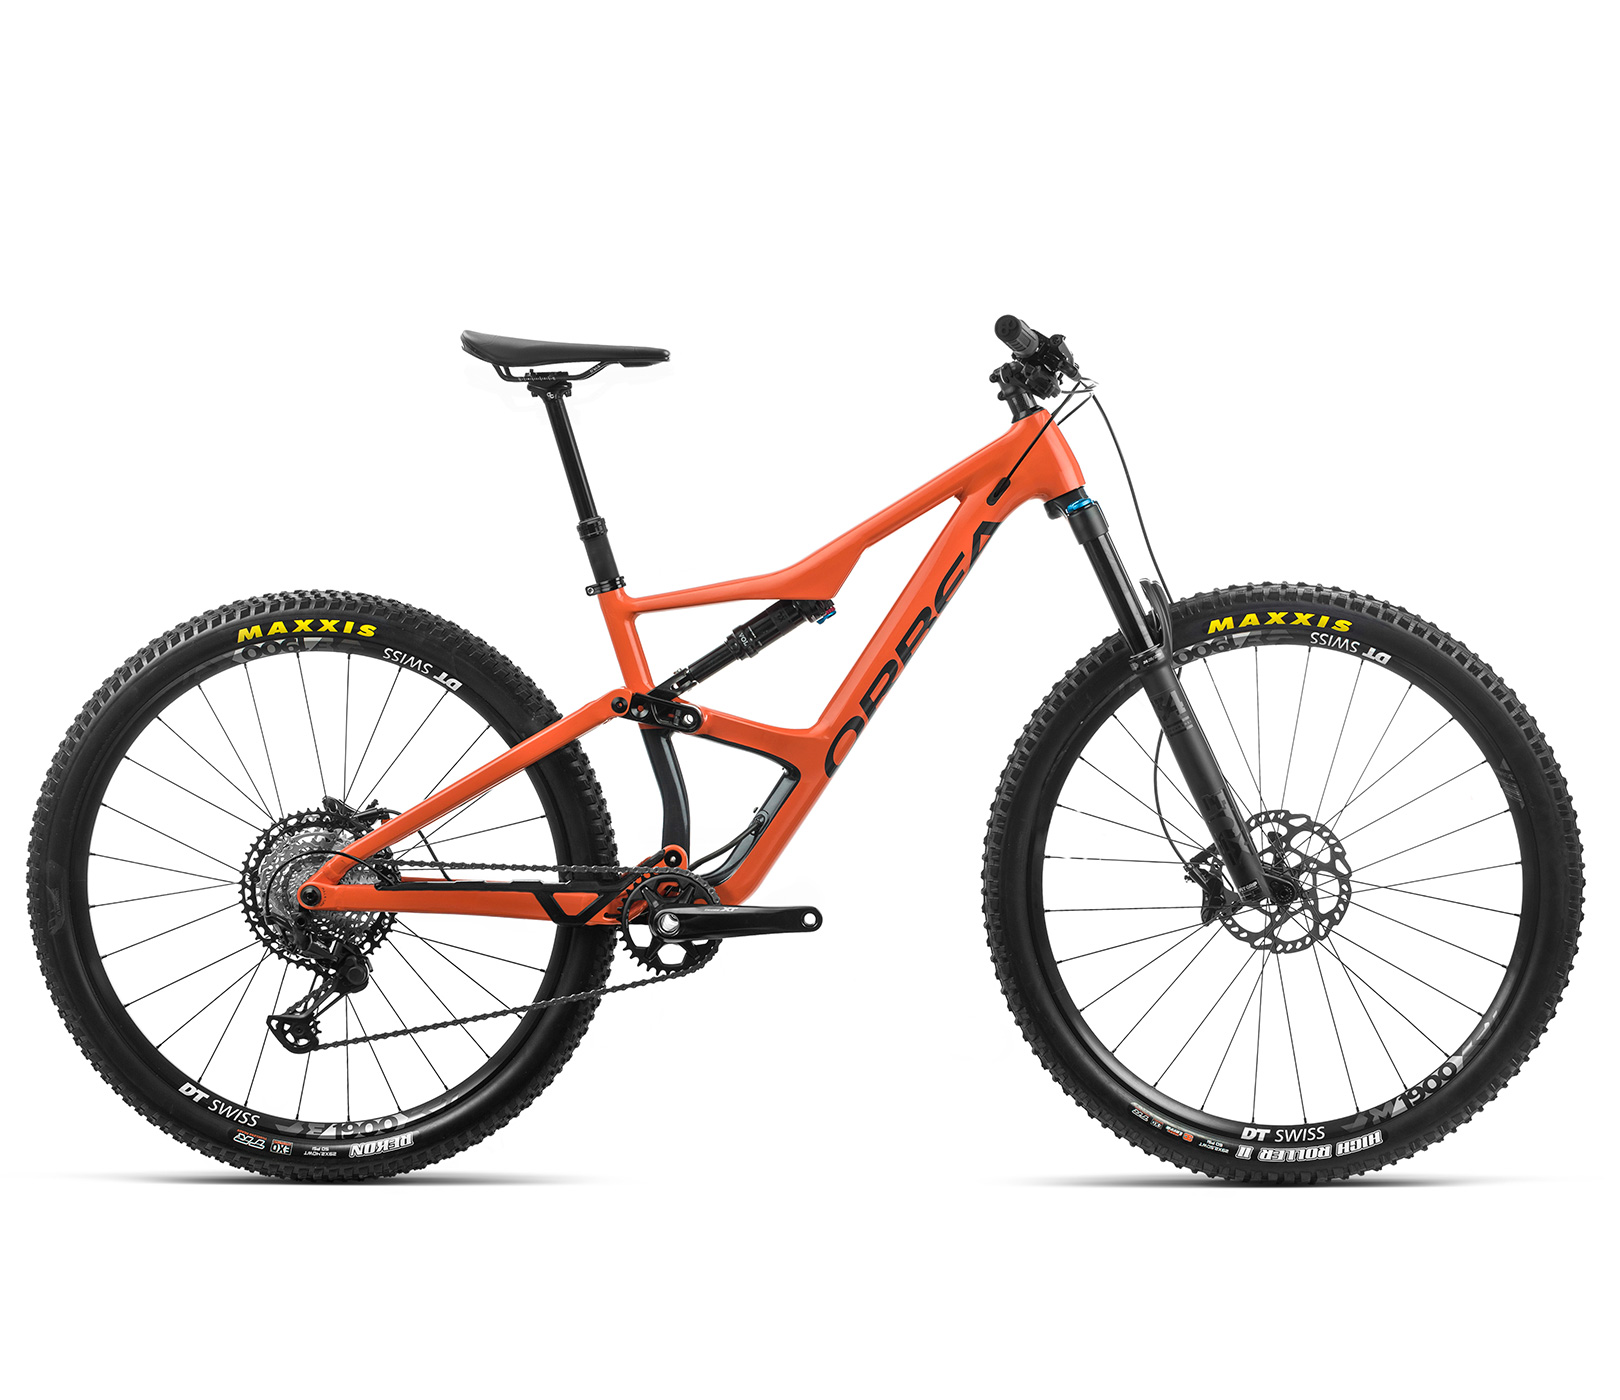 OCCAM H10 Mountain bike